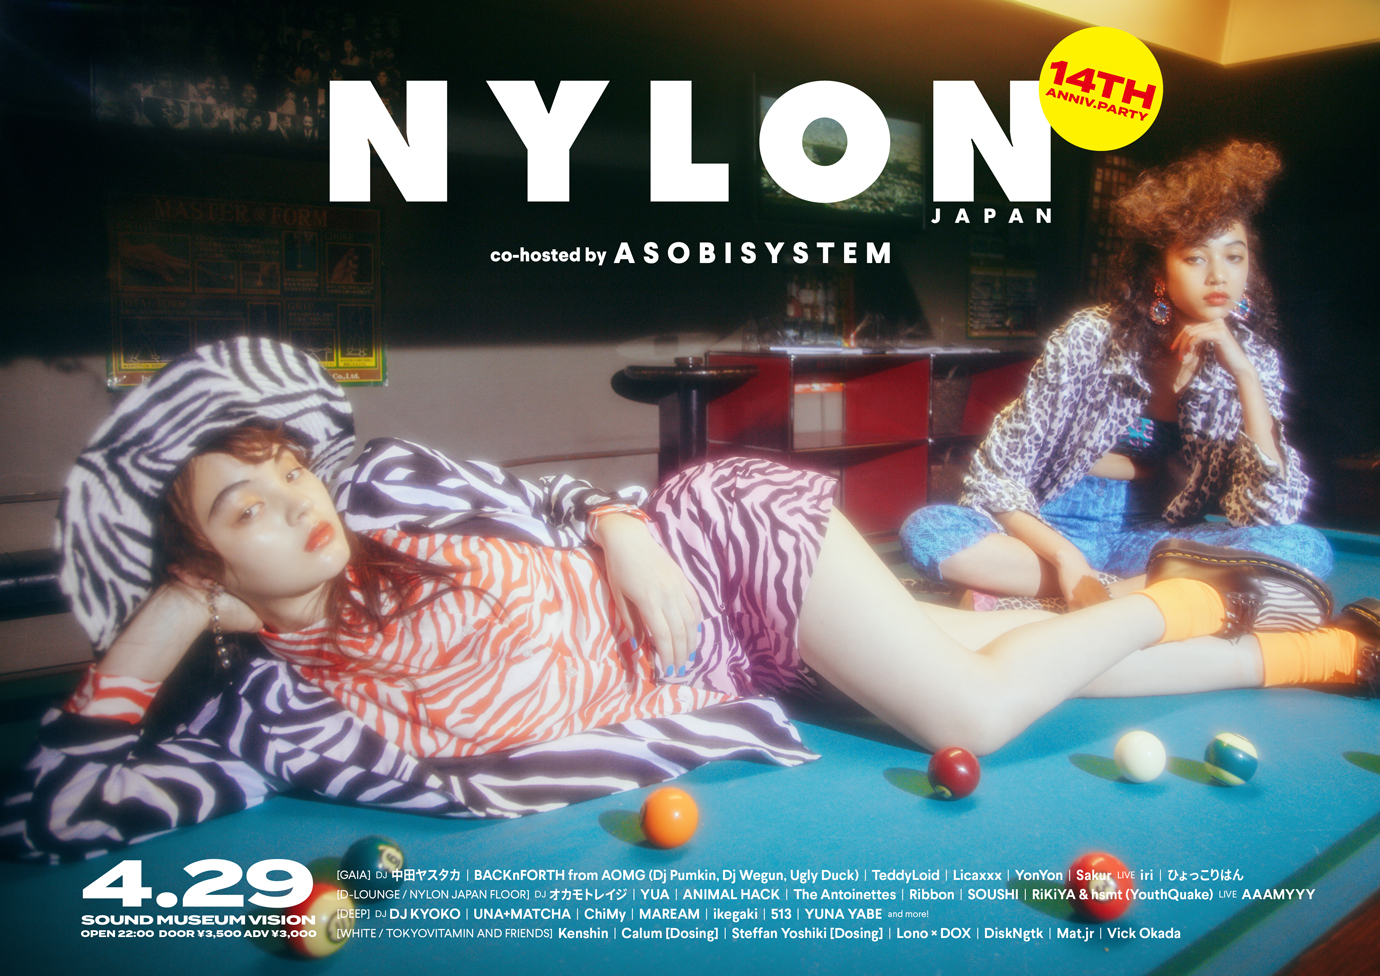 NYLON JAPAN 14TH ANNIVERSARY PARTY co-hosted by ASOBISYSTEM